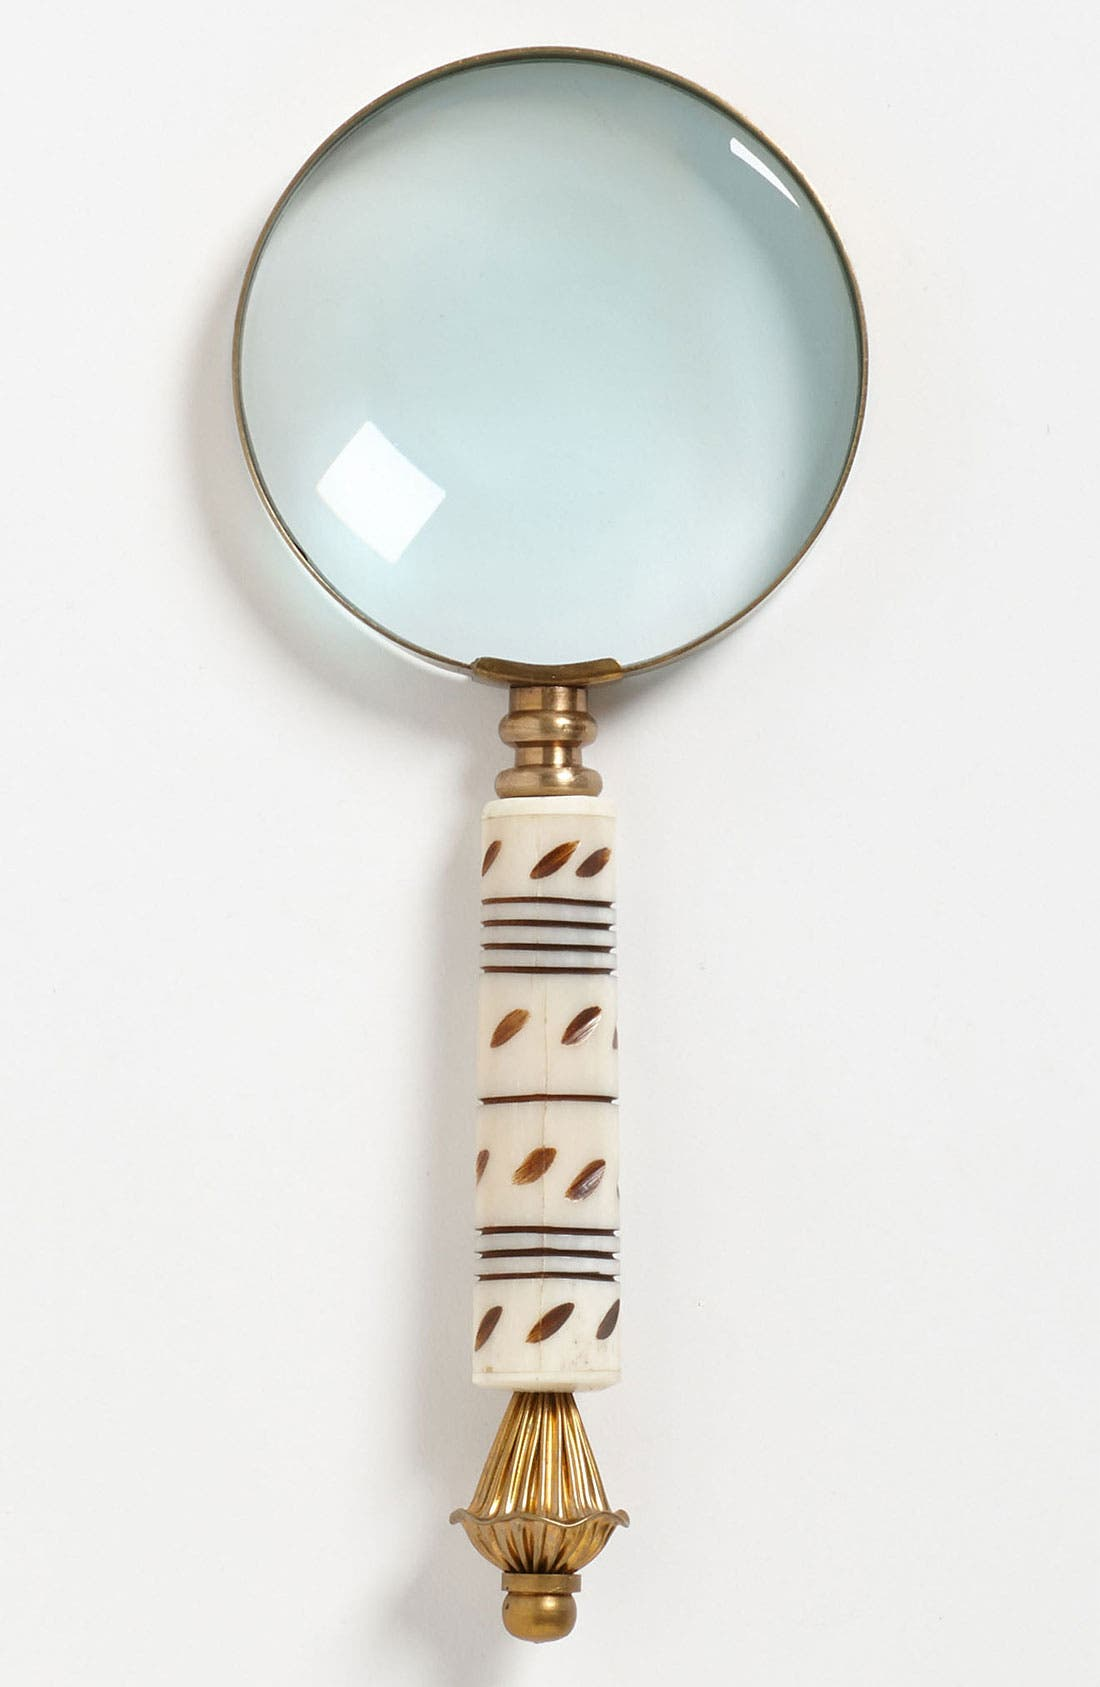 Alternate Image 1 Selected - Import Collection Magnifying Glass with Carved Horn Handle